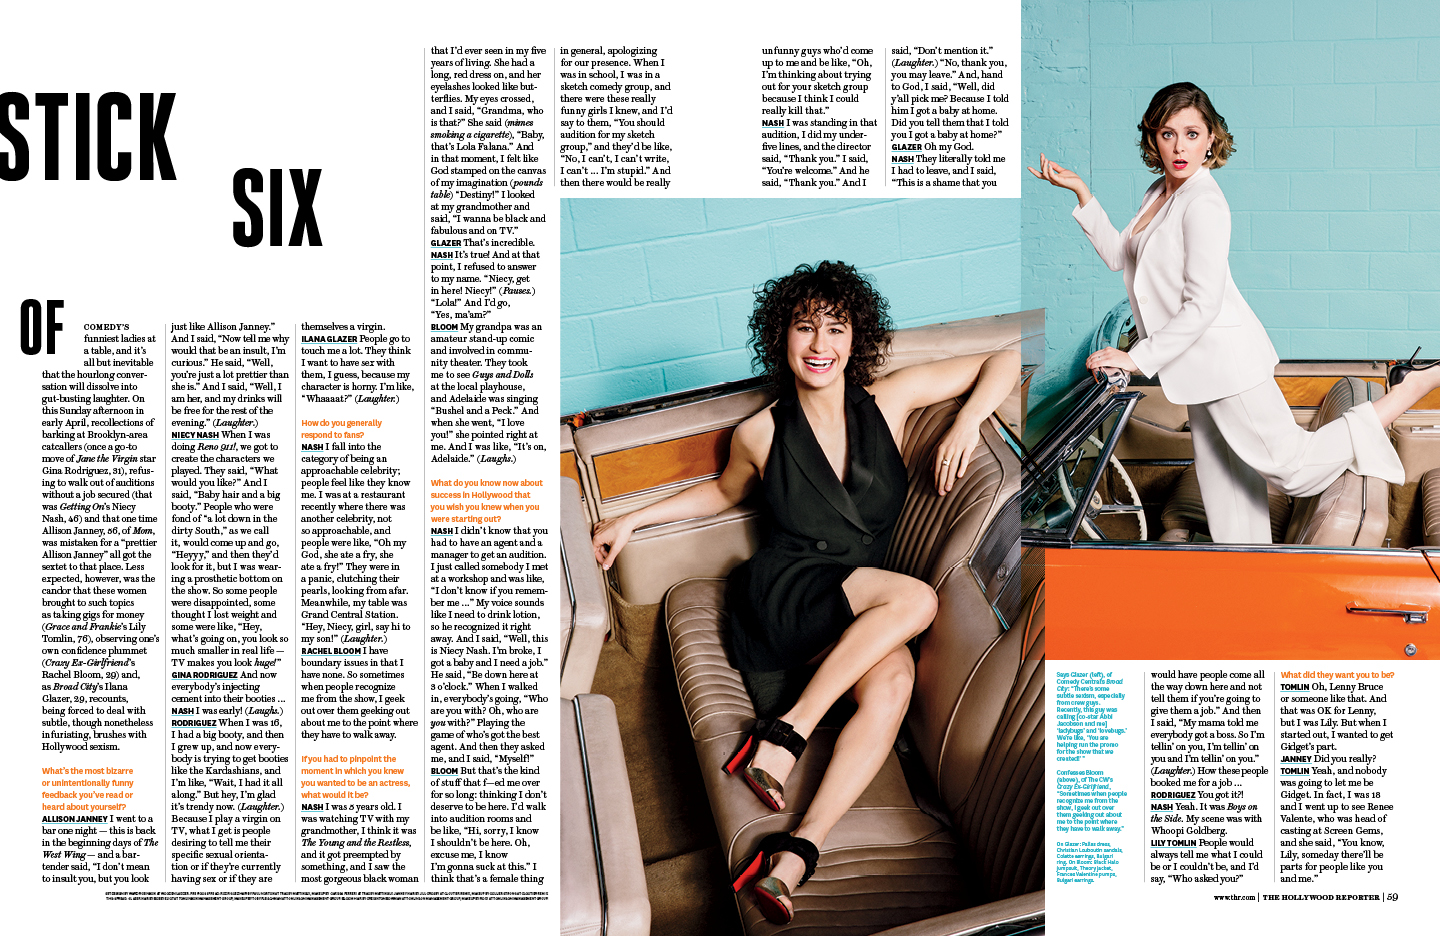 Comedy Actress Roundtable / The Hollywood Reporter / 6.24.16 / kelsey stefanson / art direction + graphic design / yeskelsey.com